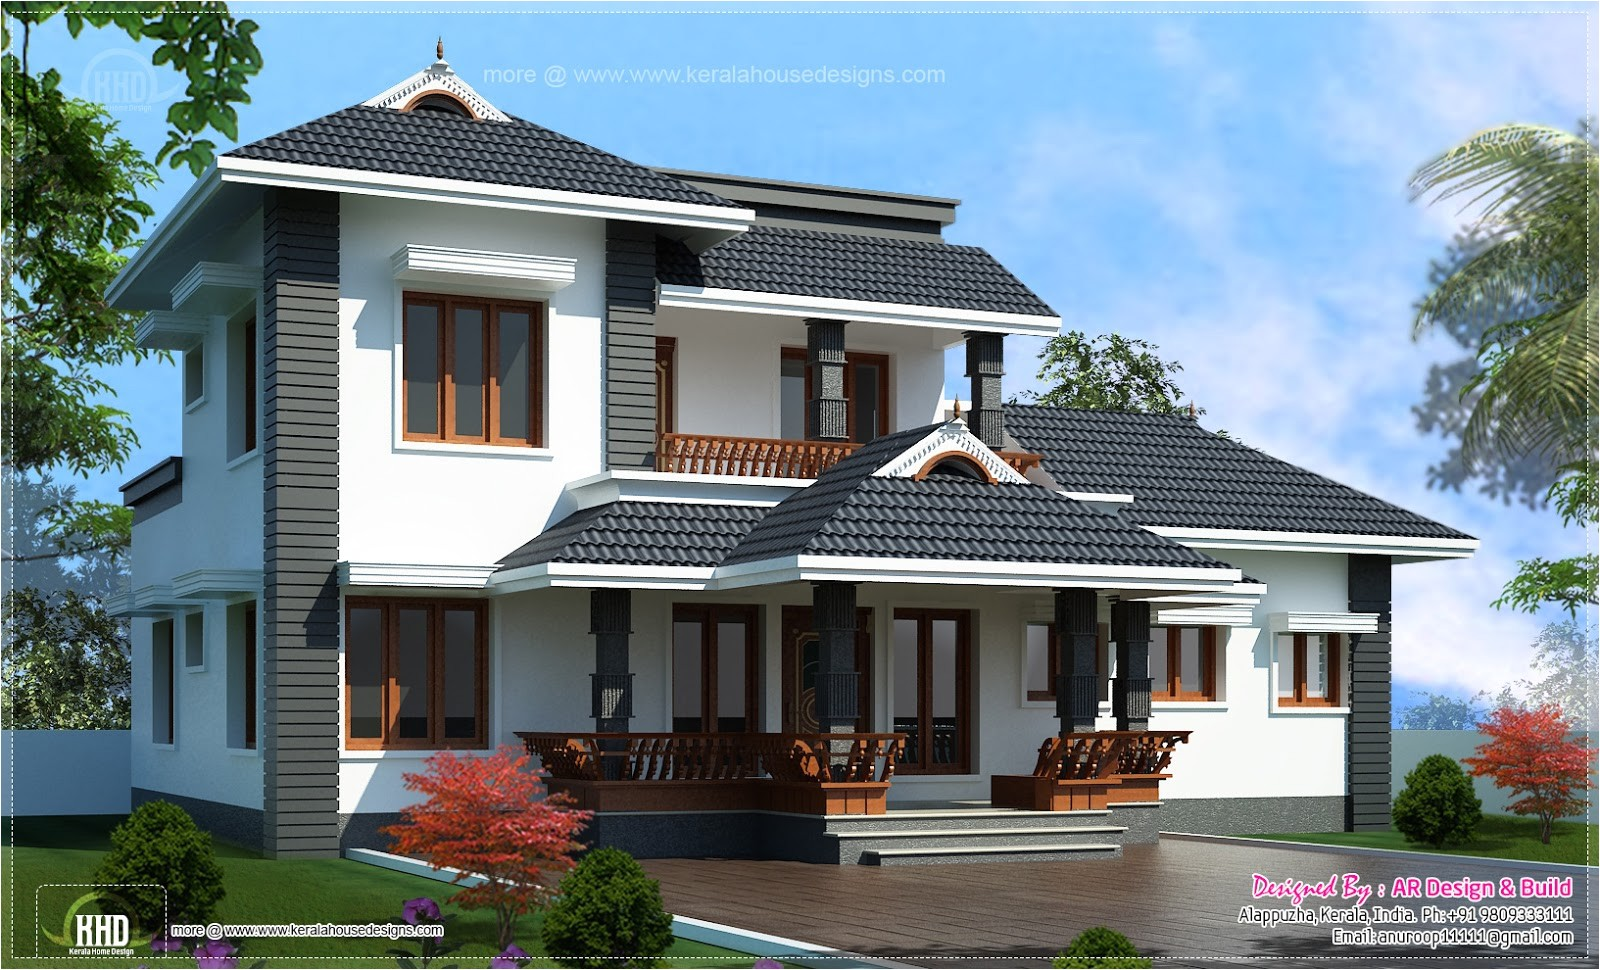 modern house plans under 2000 square feet luxury house plan 2000 sq feet 4 bedroom sloping roof residence kerala